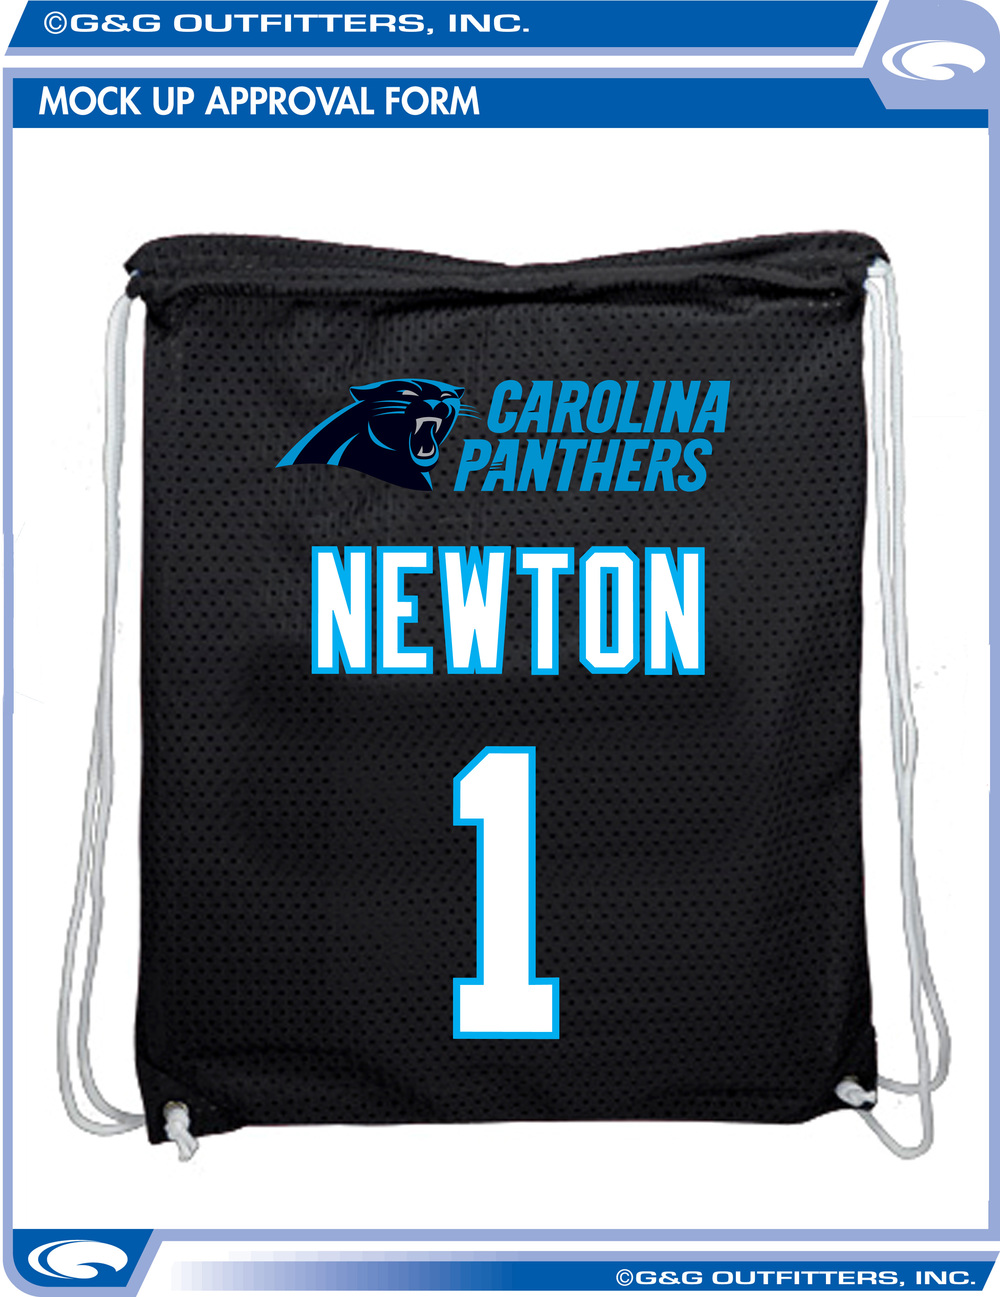 Panthers Drawstring Jersey Bag5.jpg